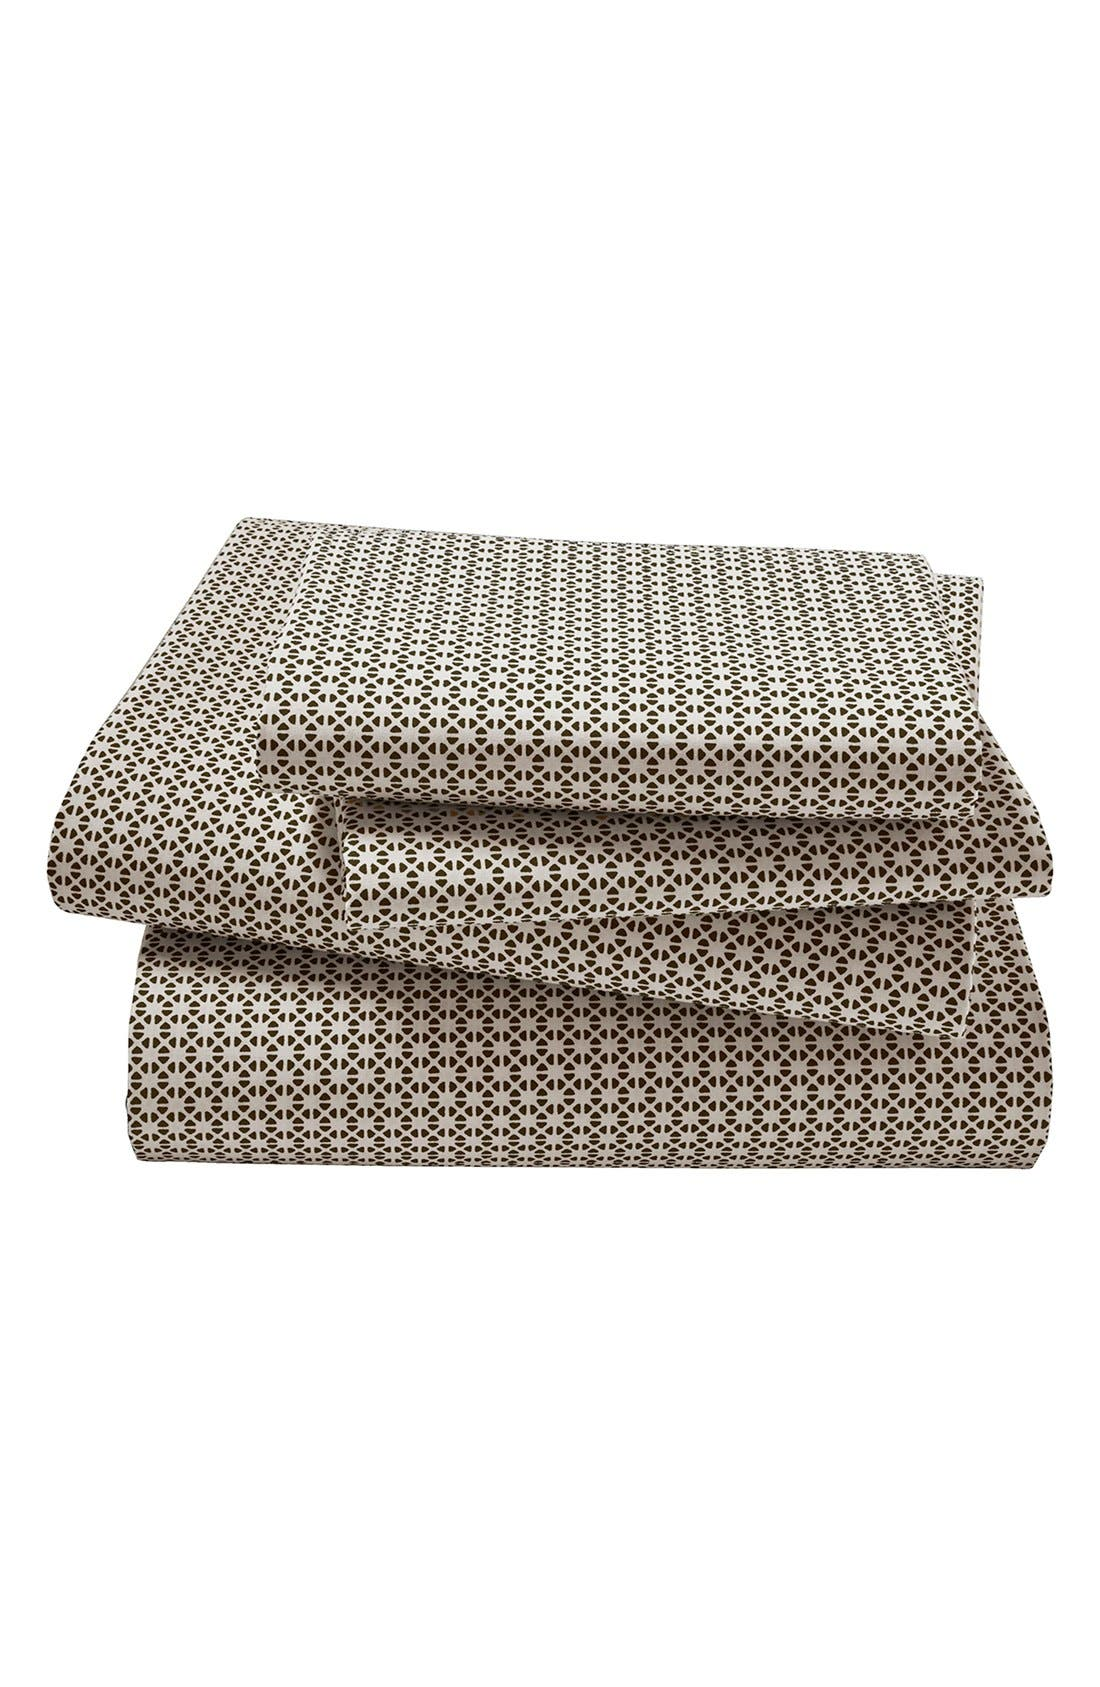 DwellStudio 'Fez' 300 Thread Count Sheet Set